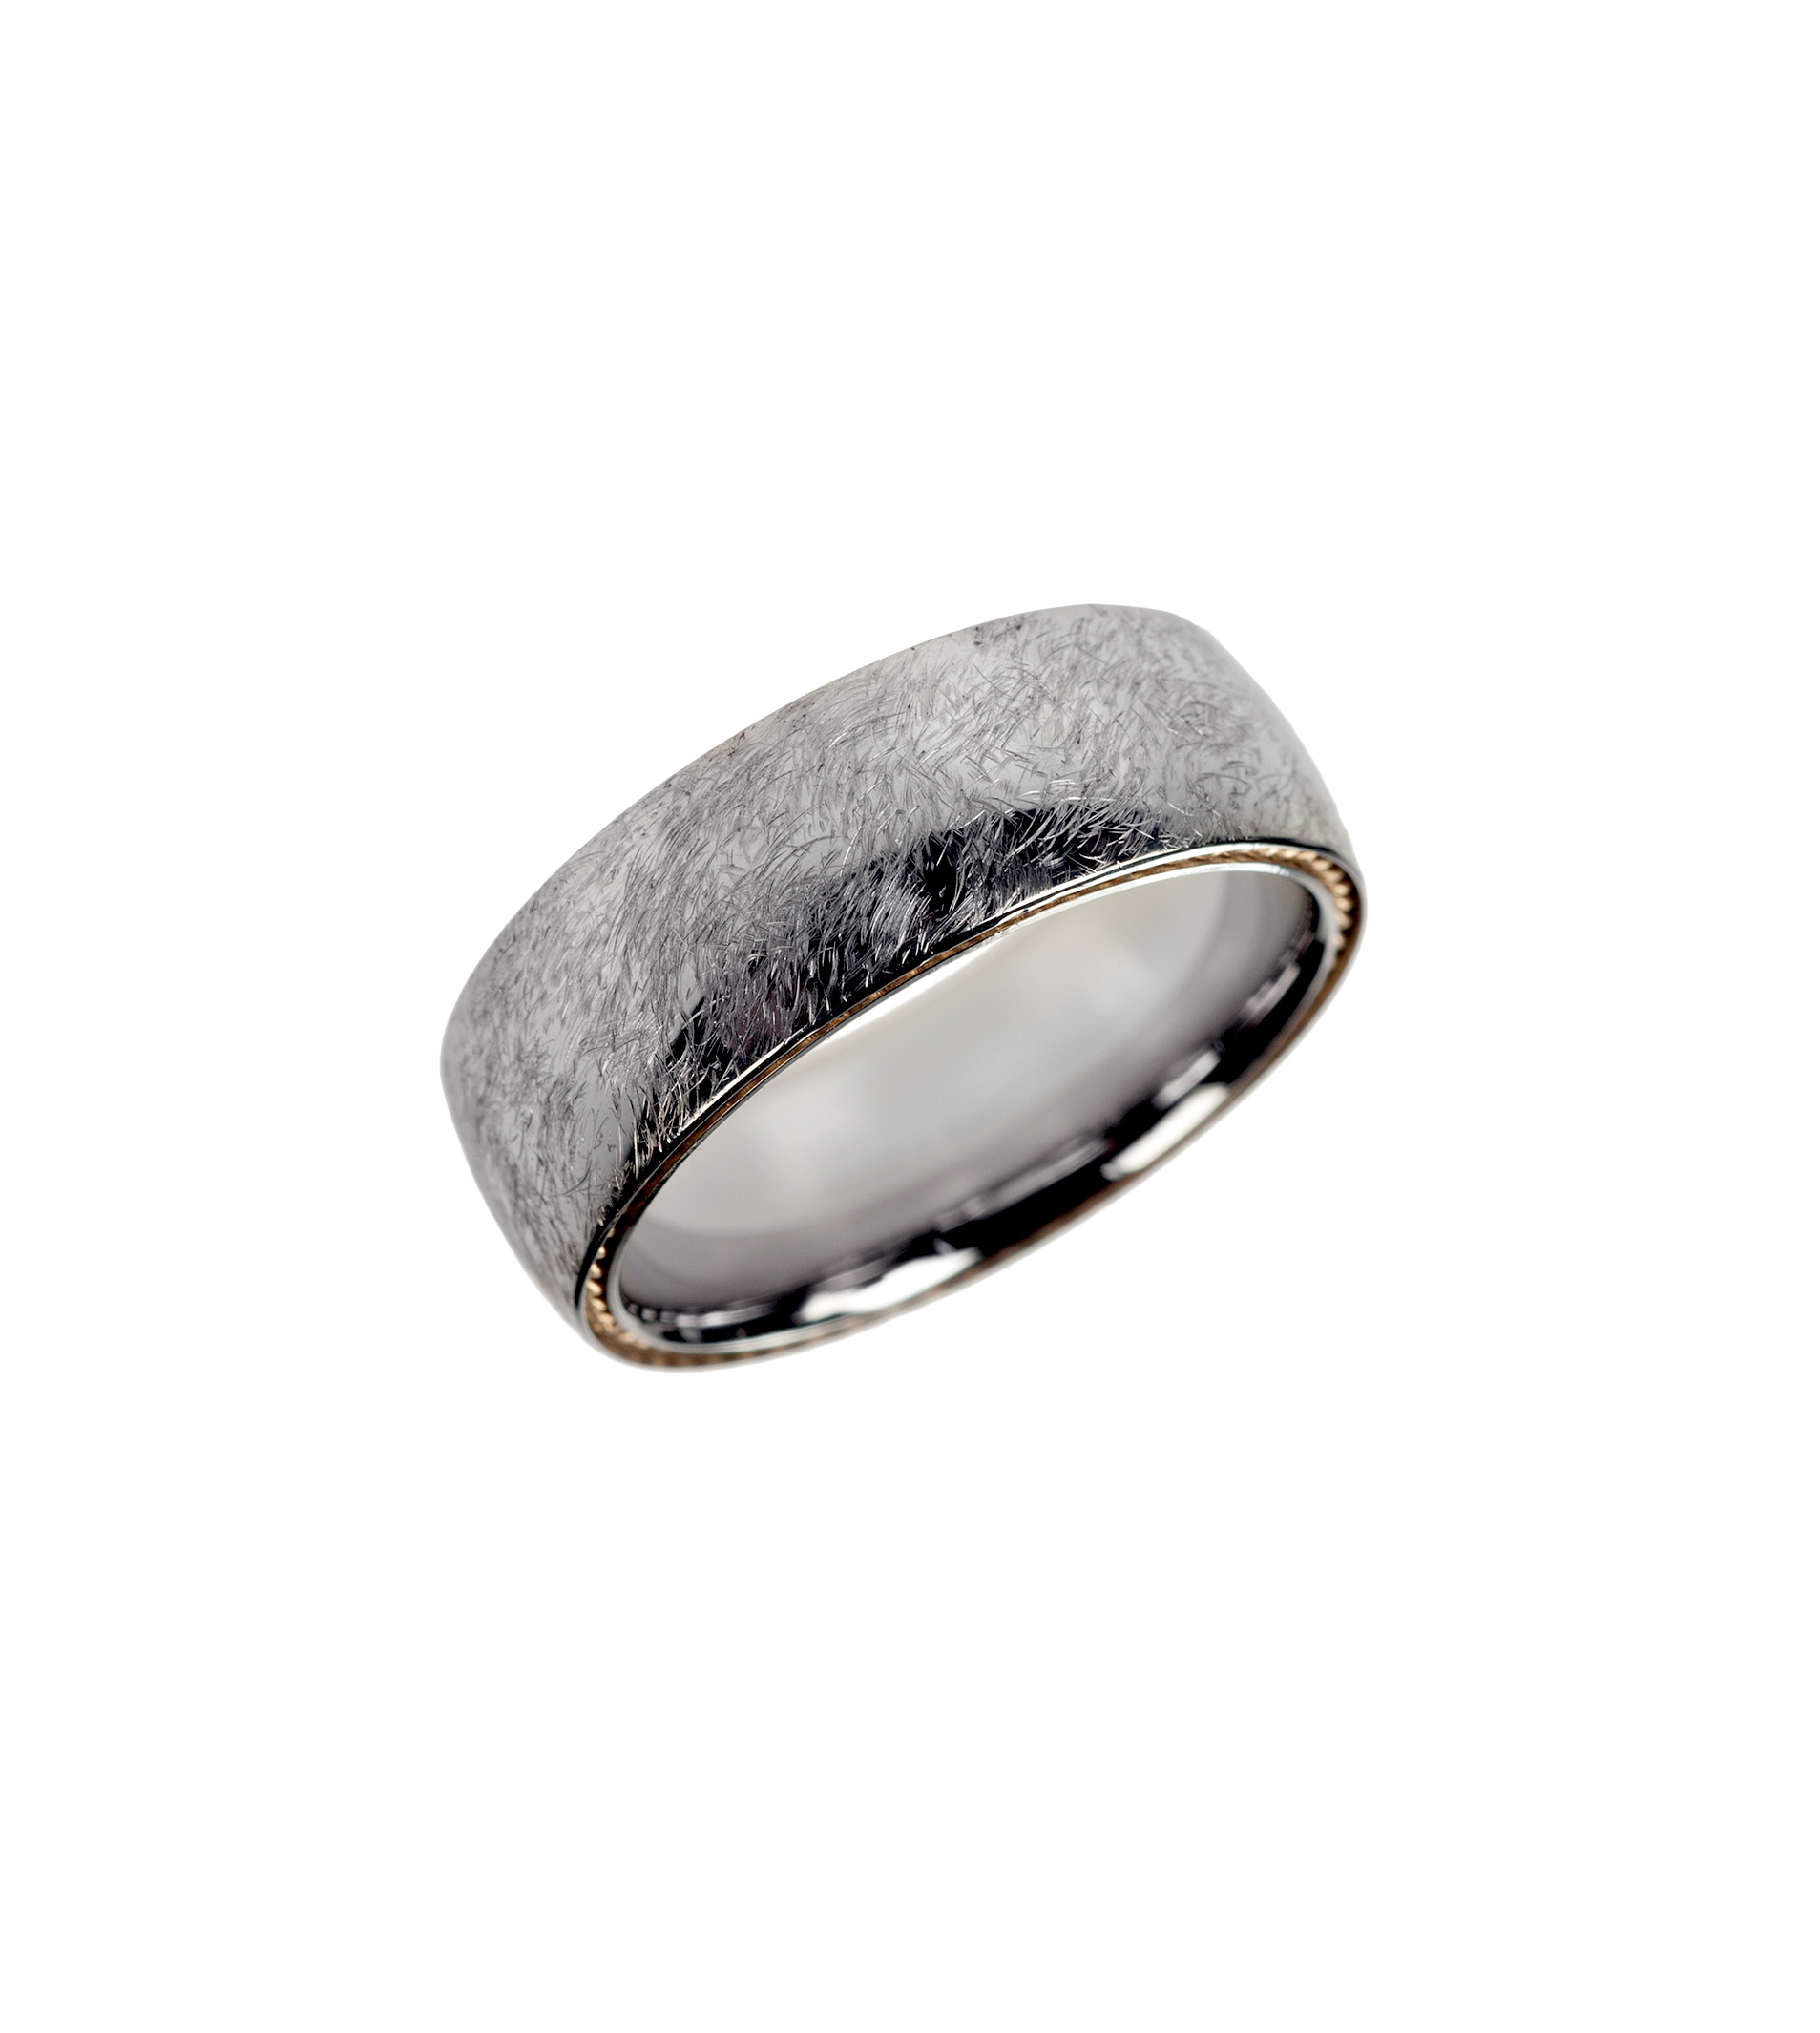 Cobalt-chrome men's wedding band